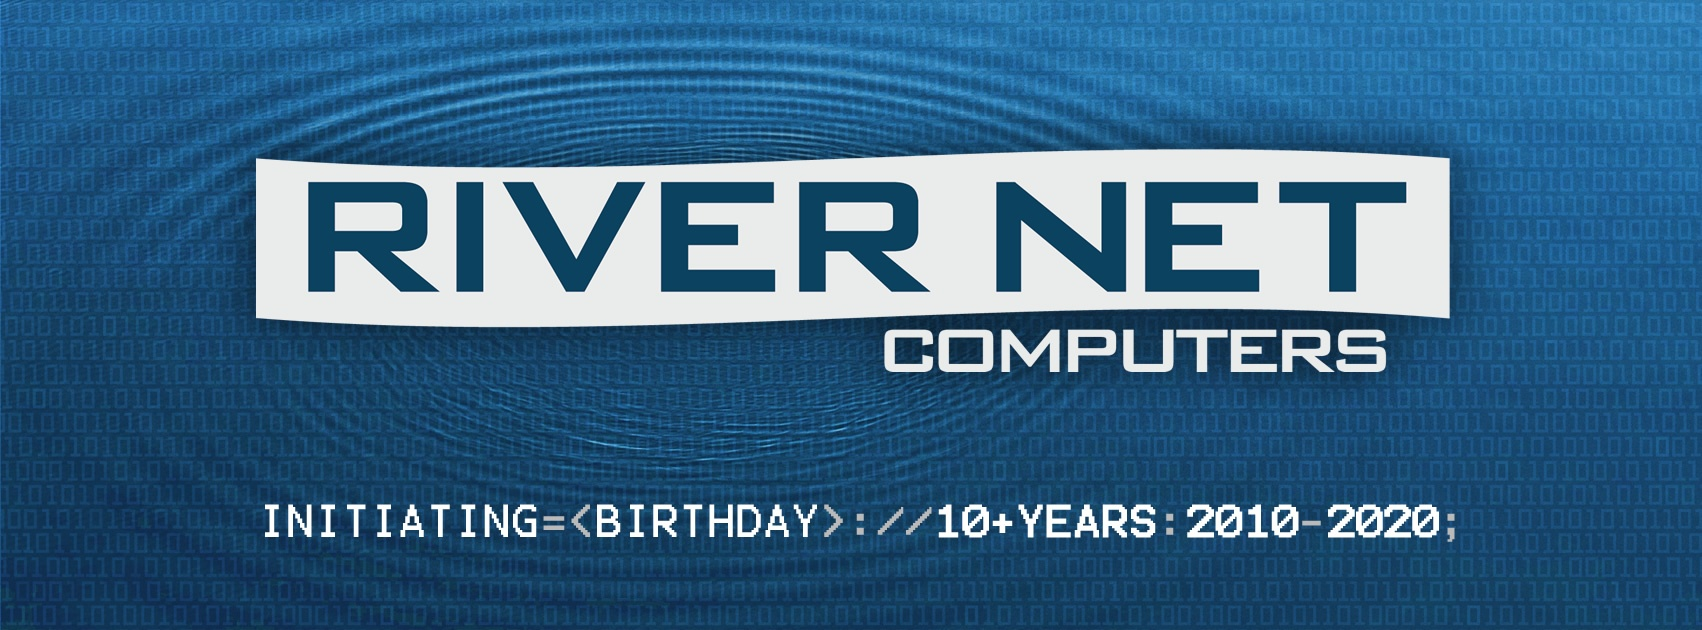 River Net Computers 10 year anniversary